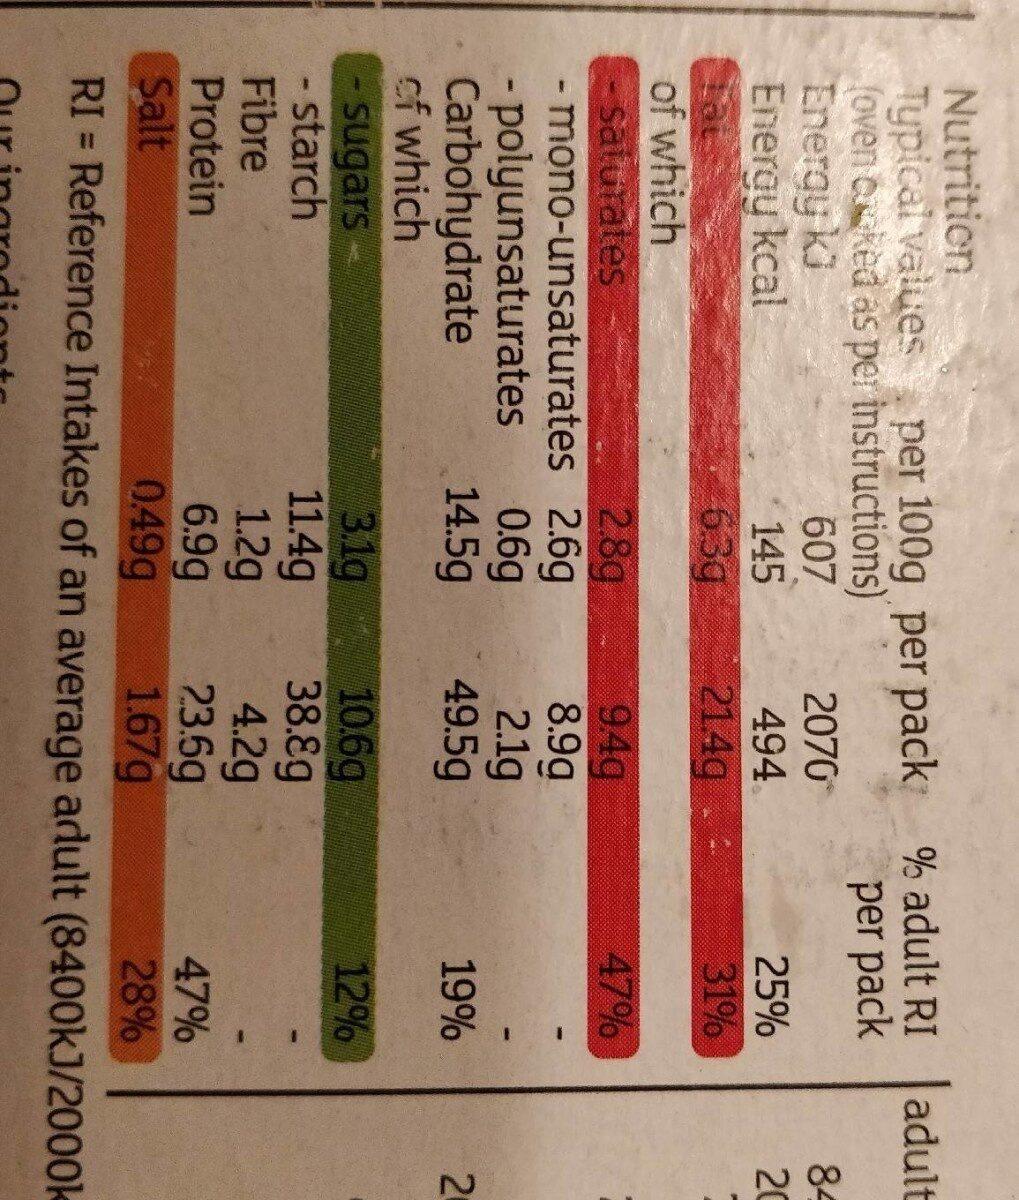 Beef Lasagne - Nutrition facts